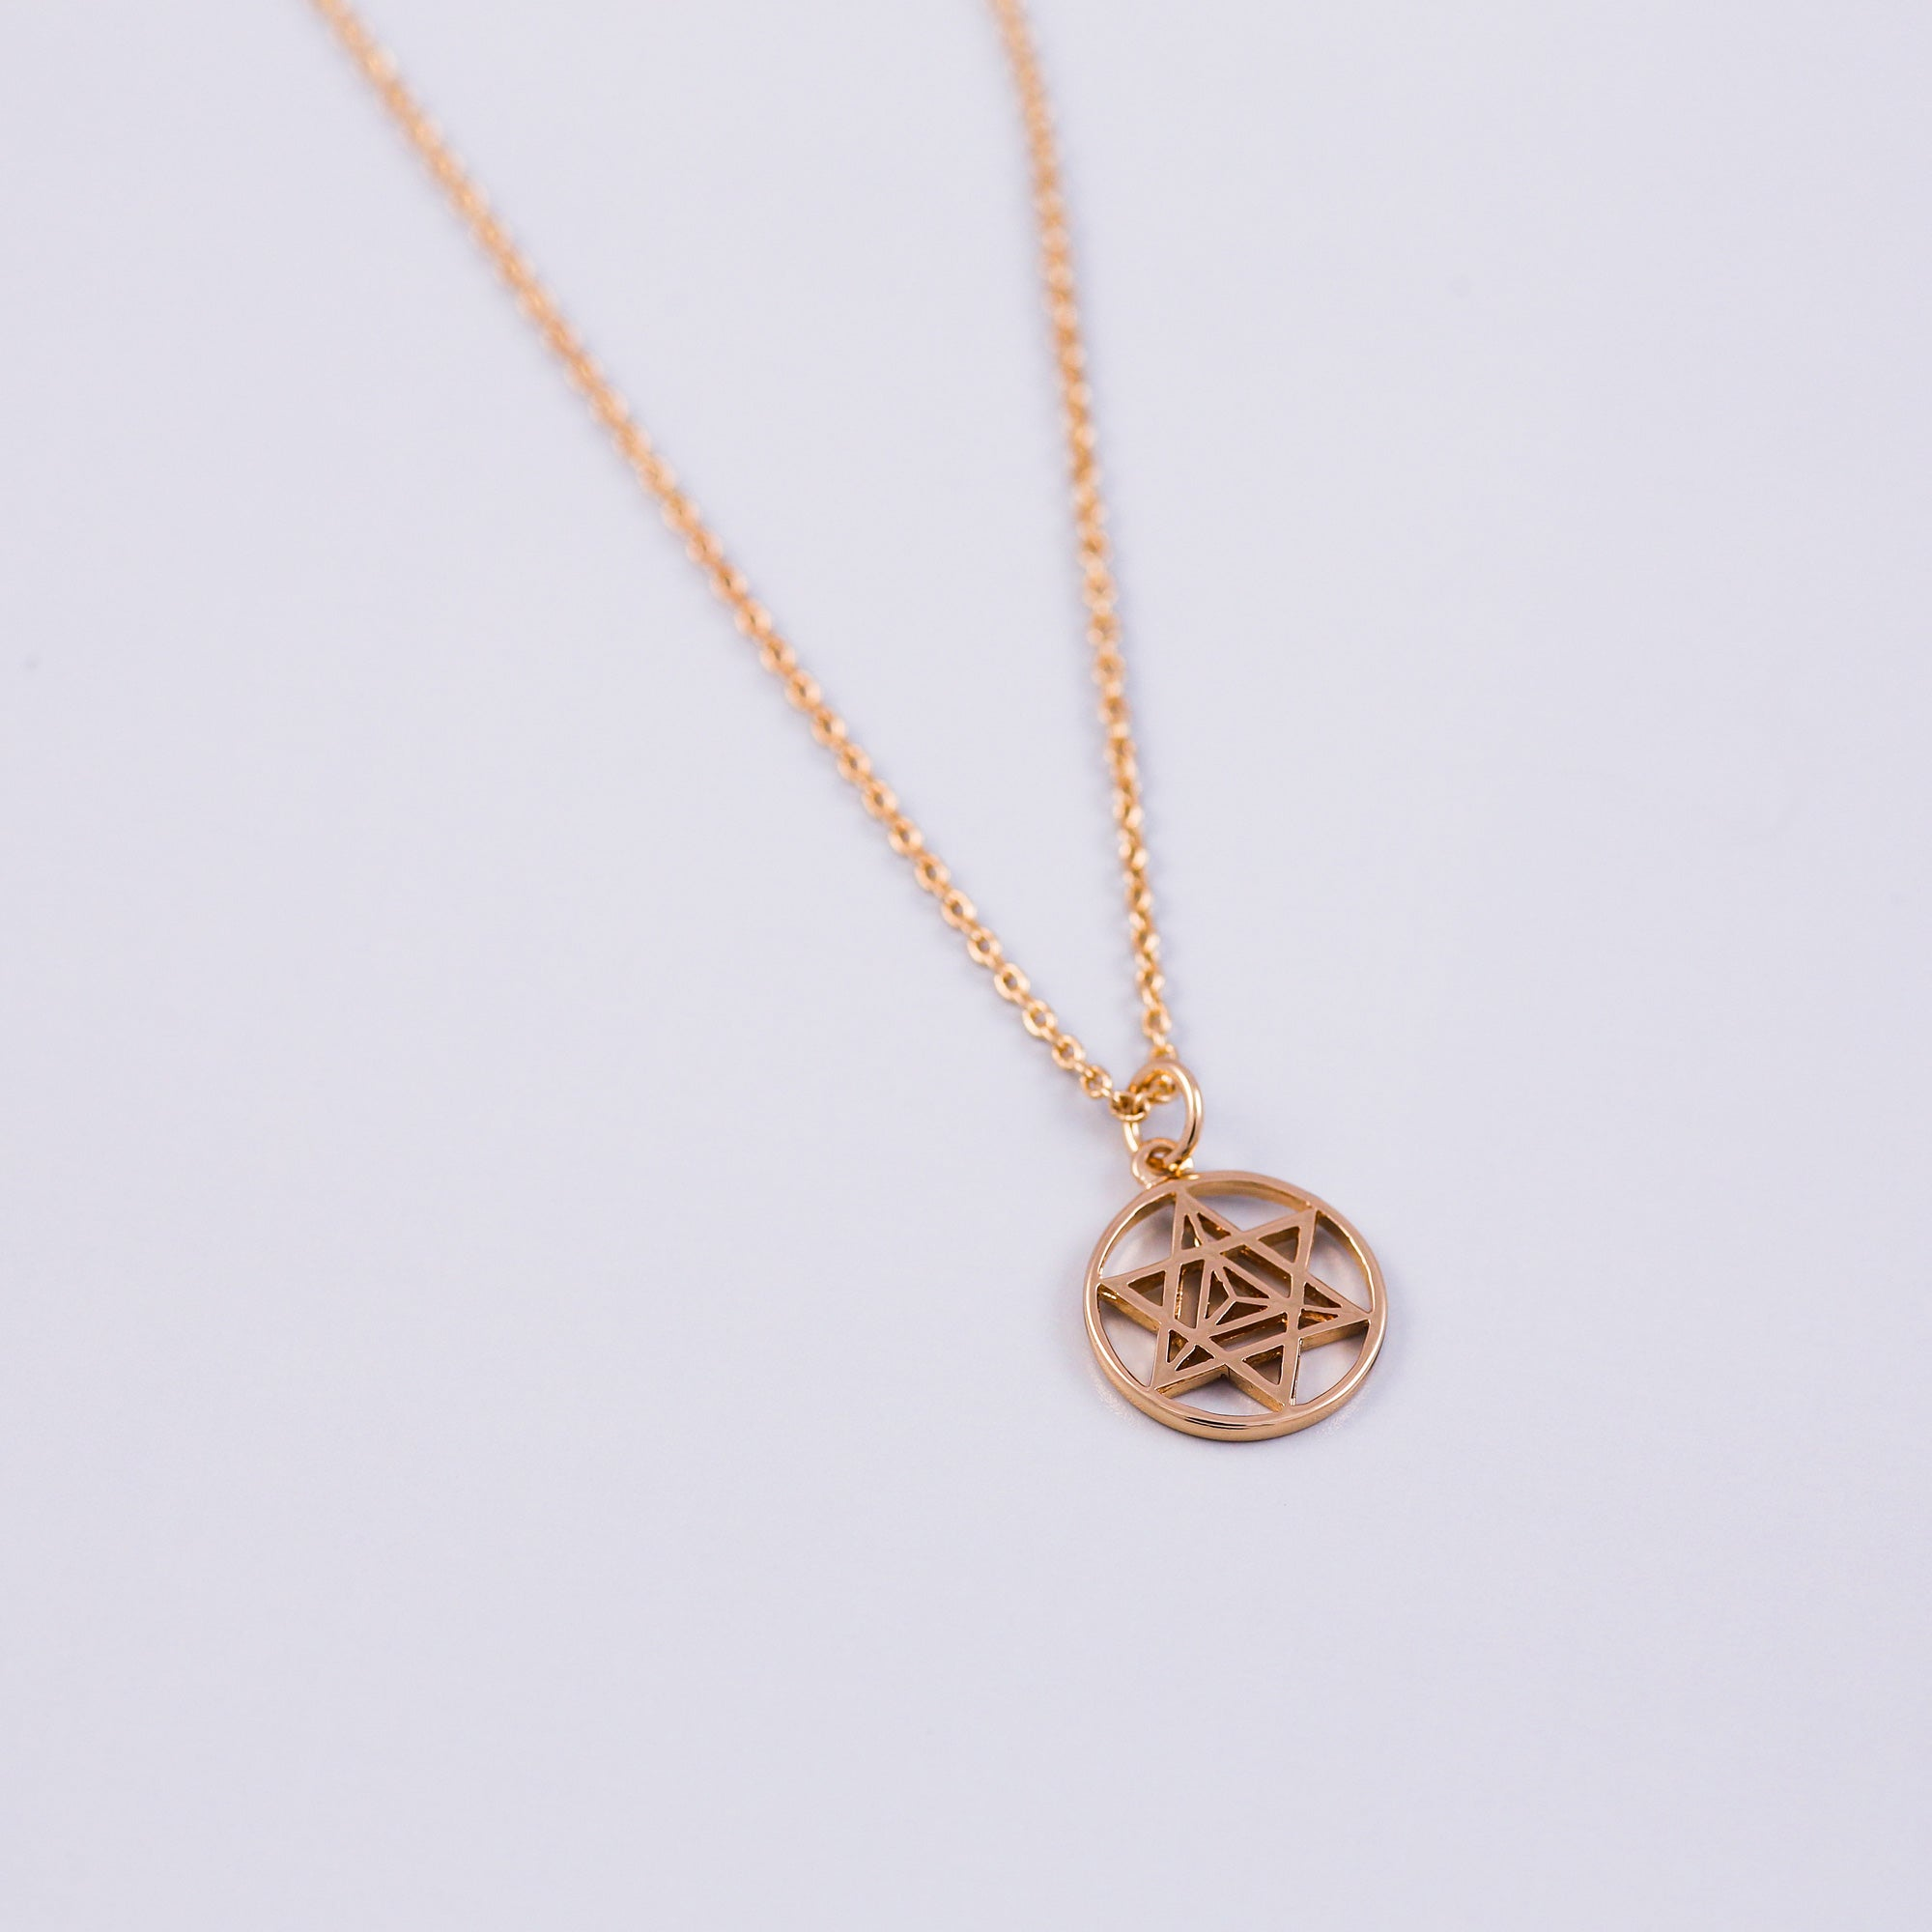 The Four Elements Earth Air Fire Water | Pentagram Charm Necklace | Gold